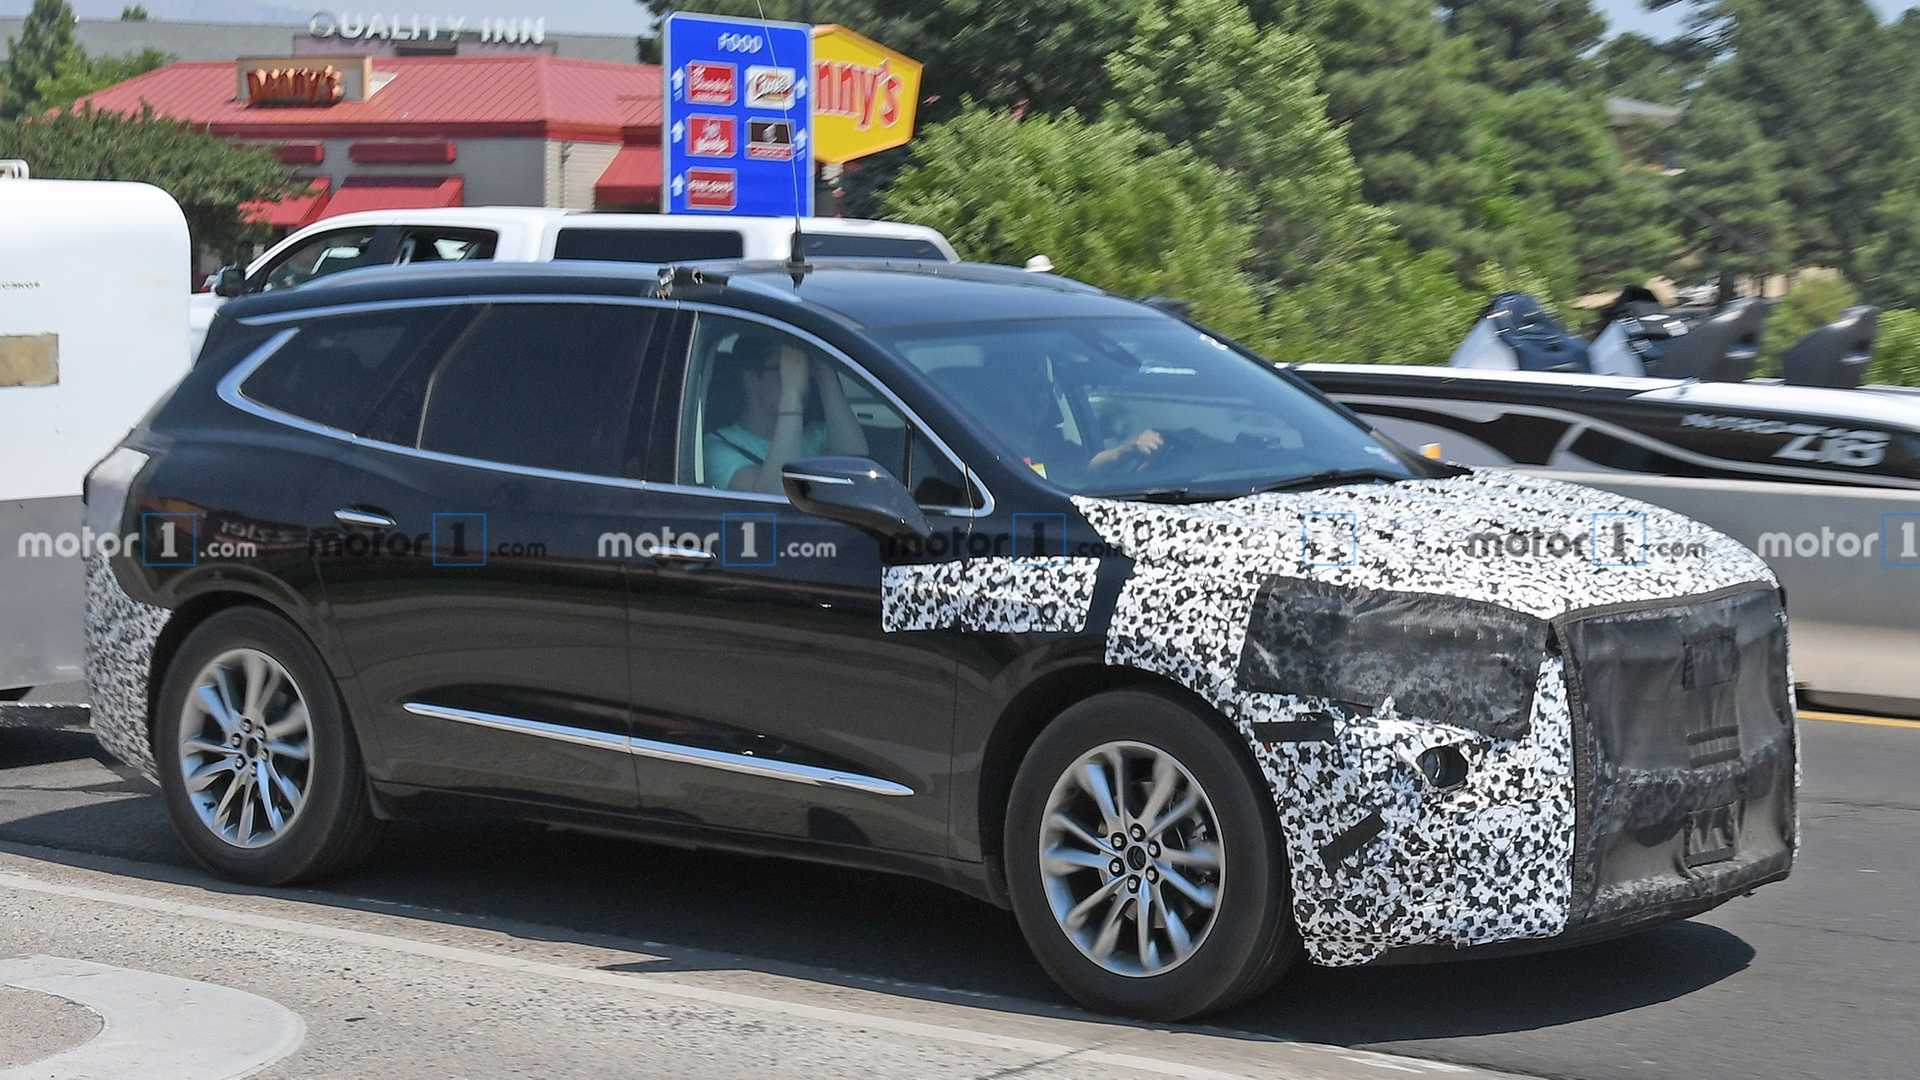 2021 Buick Enclave Spied For The First Time Build Your Own 2021 Buick Enclave